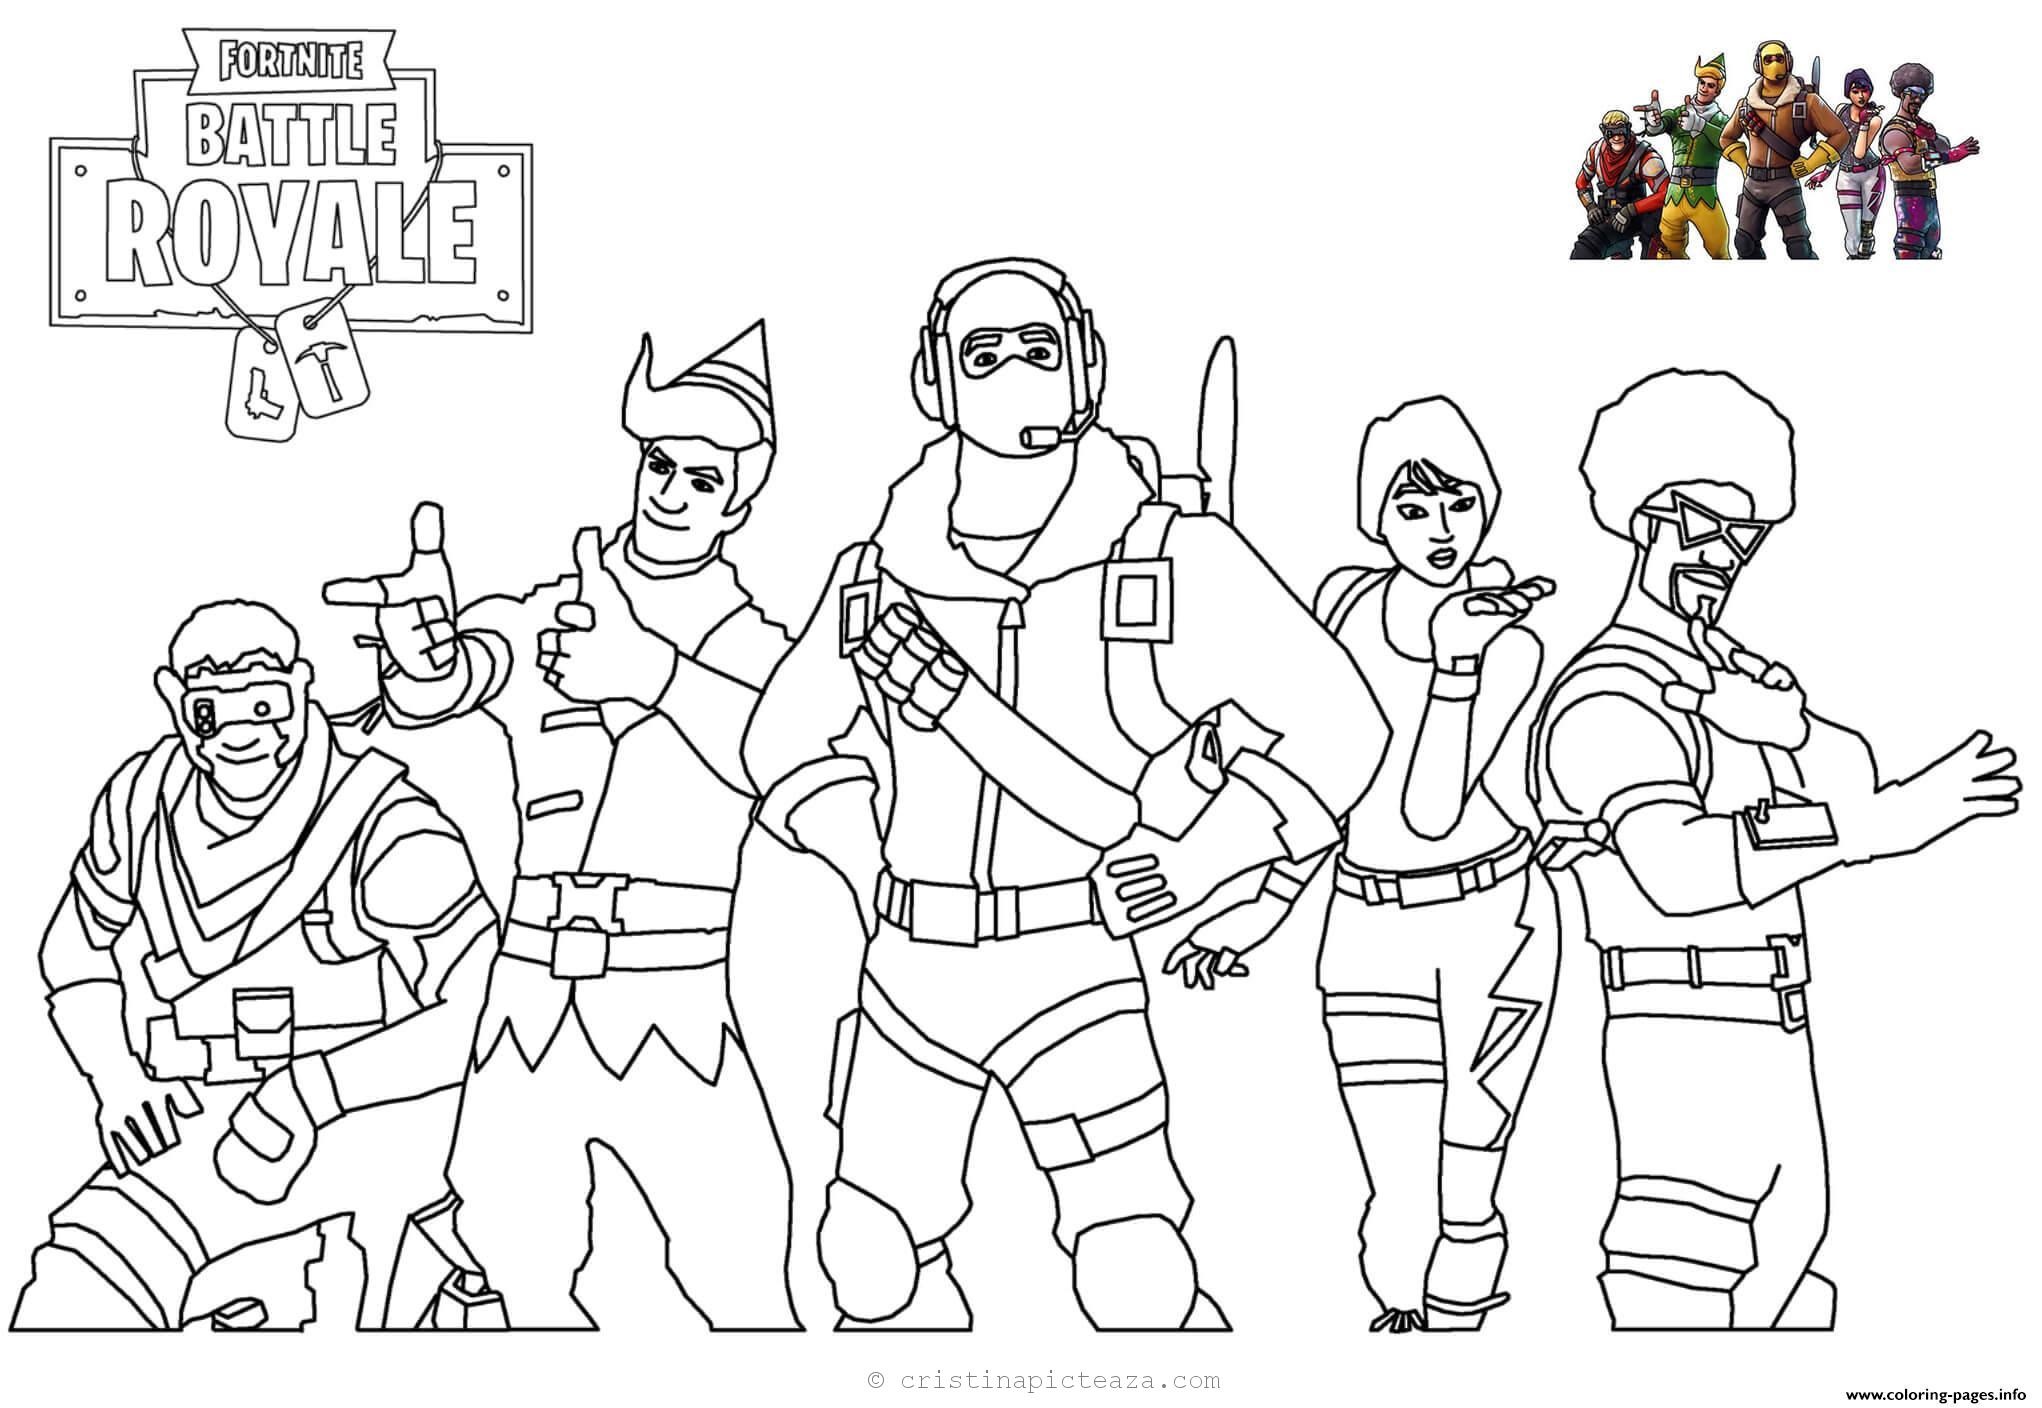 Fortnite Coloring Pages Fortnite Drawings For Coloring